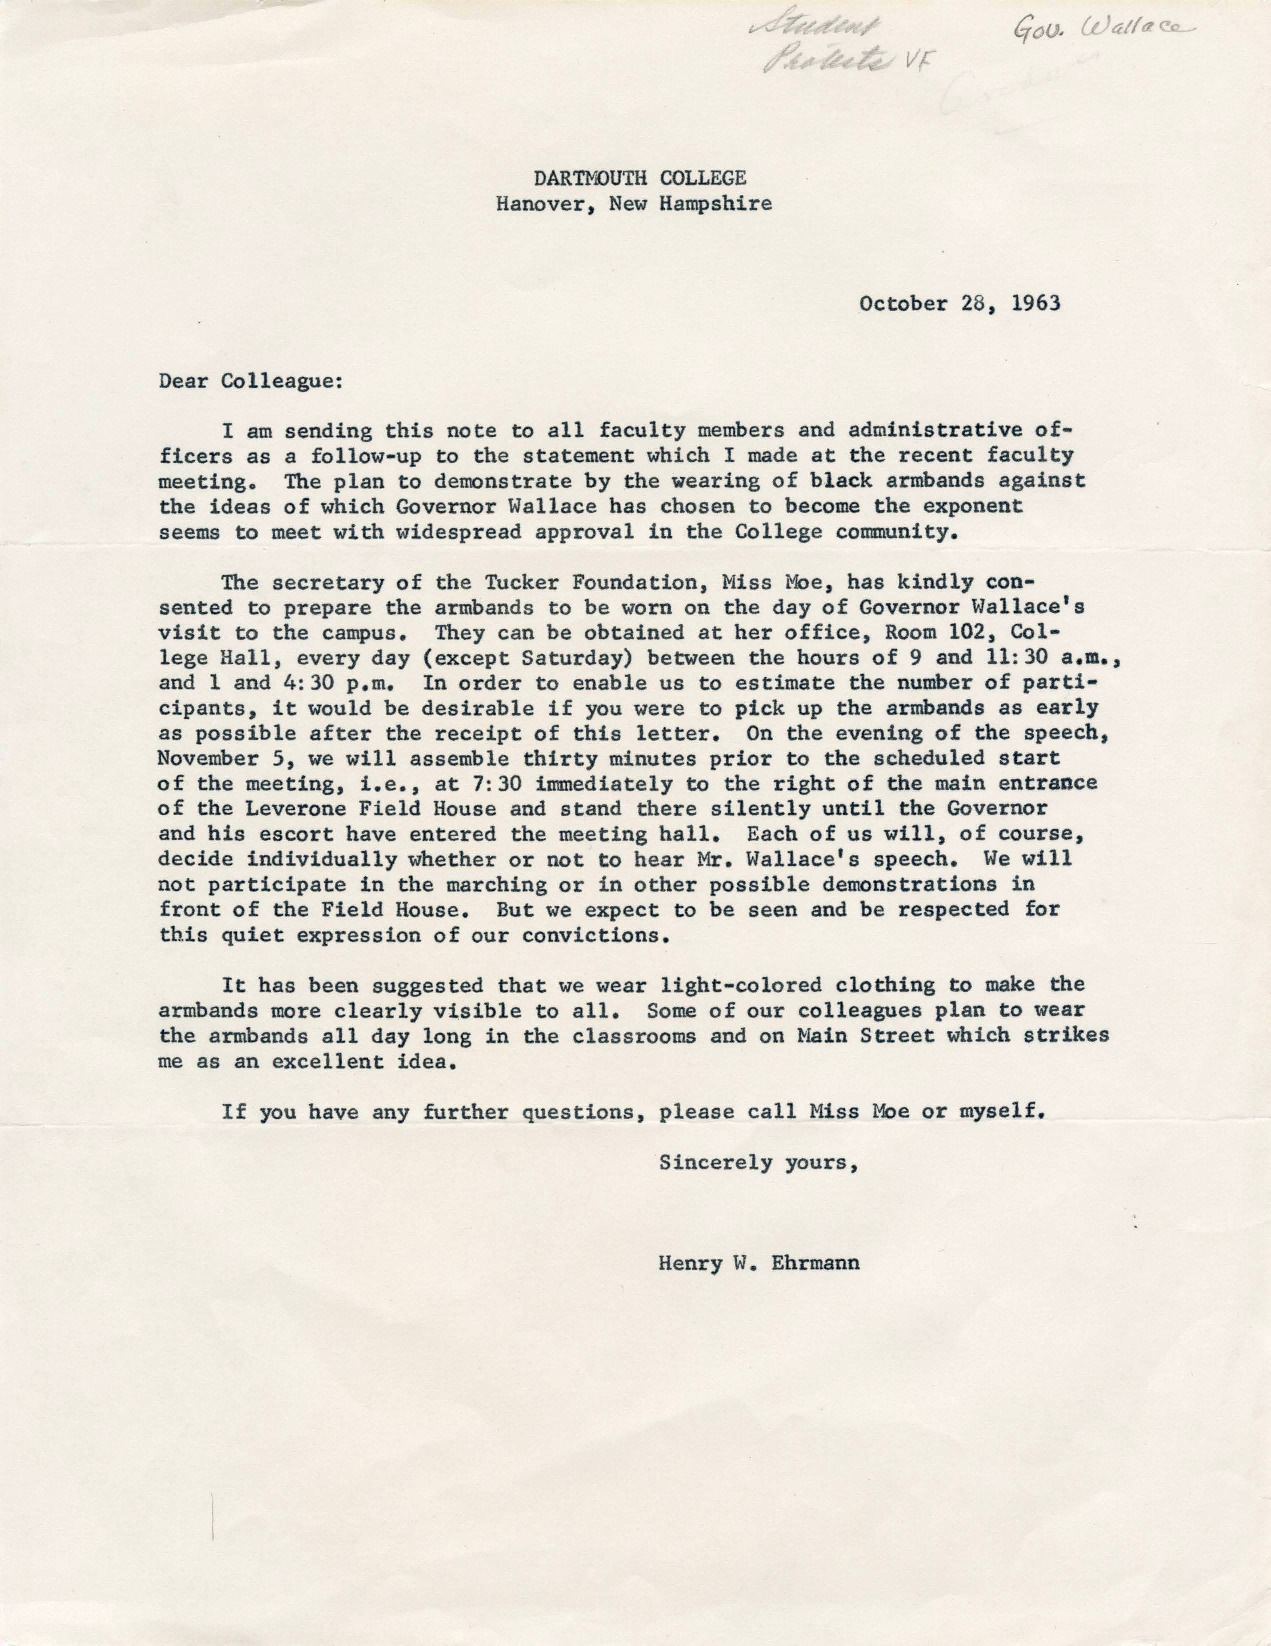 Henry Ehrmann writes to his colleagues of a plan to wear black armbands in silent protest of George Wallace's upcoming visit to Dartmouth in 1963. Ehrmann urges those who wish to protest to wear light-colored clothing, so the armband is more visible, and indicates some faculty plan to wear armbands all day long in classrooms and on Main Street.